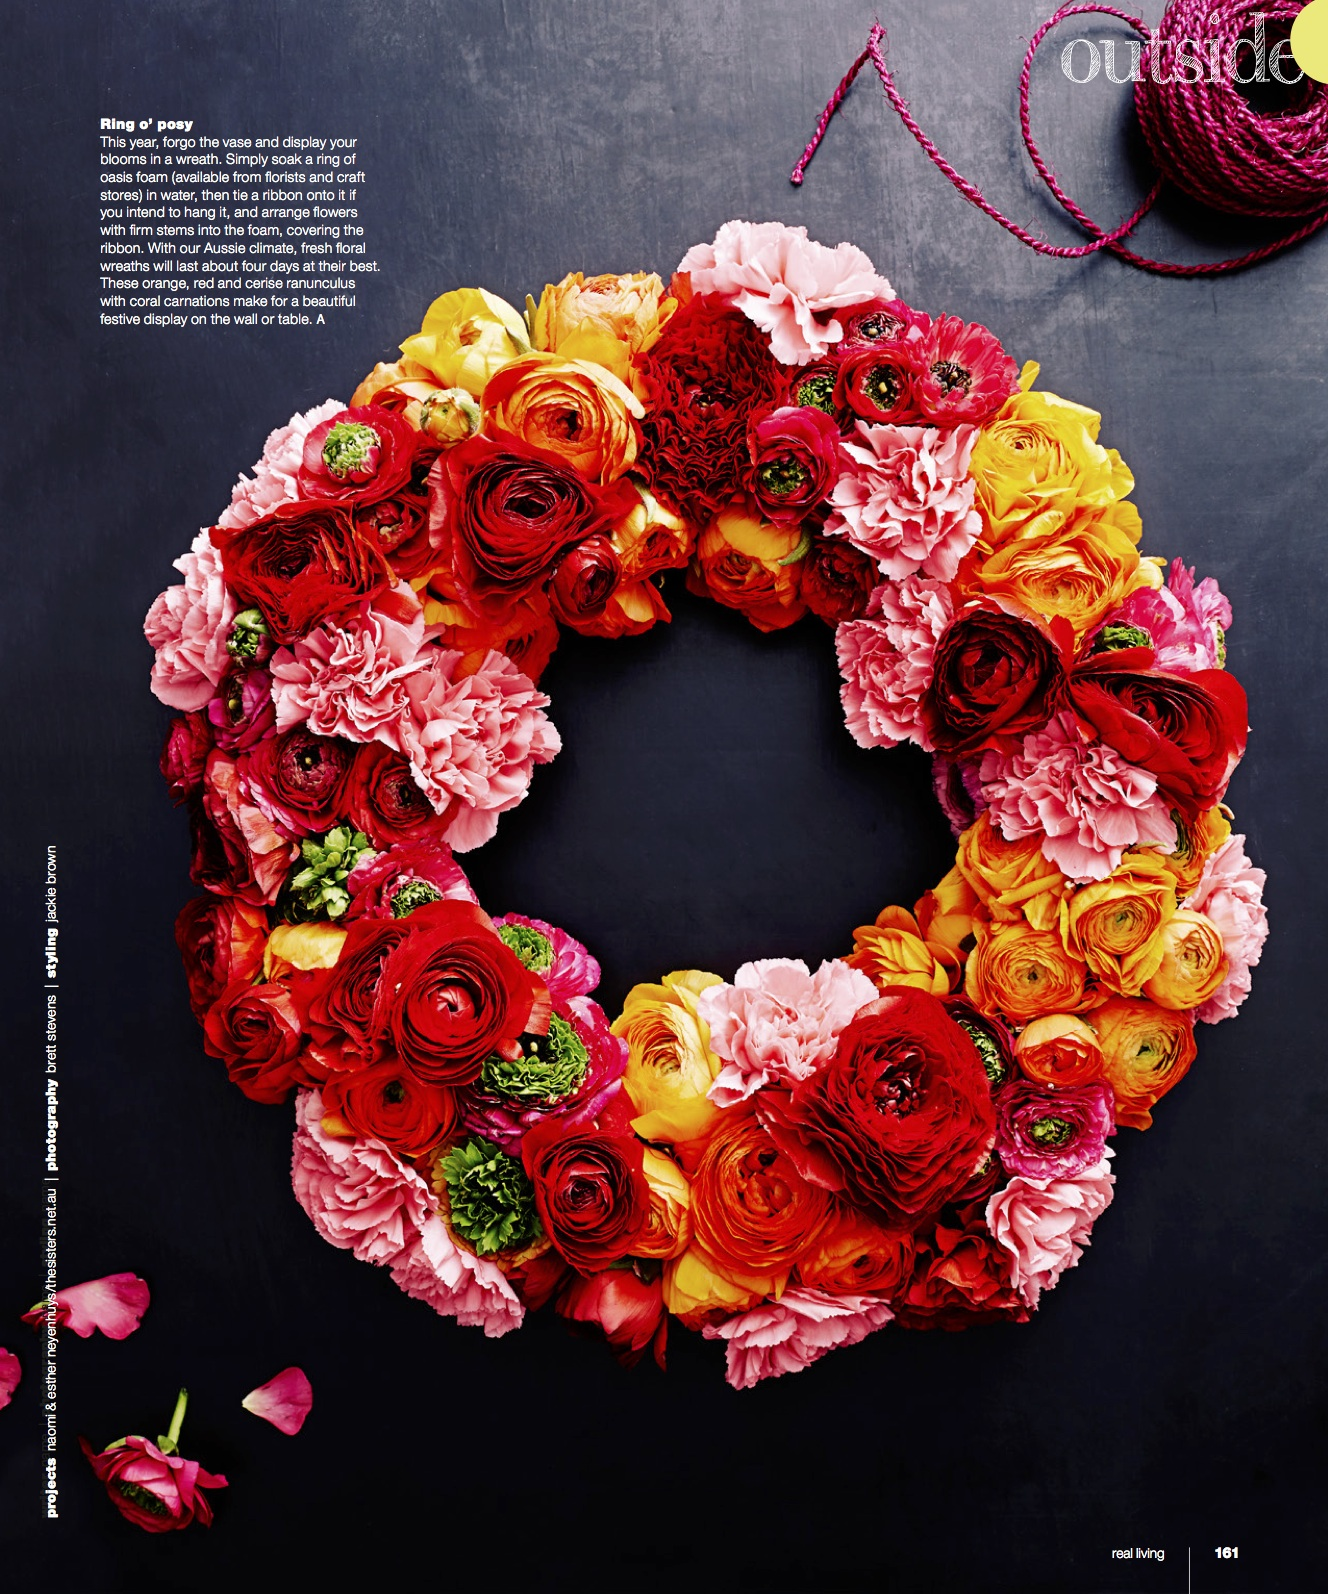 xmas-wreaths-real-living-2.jpg